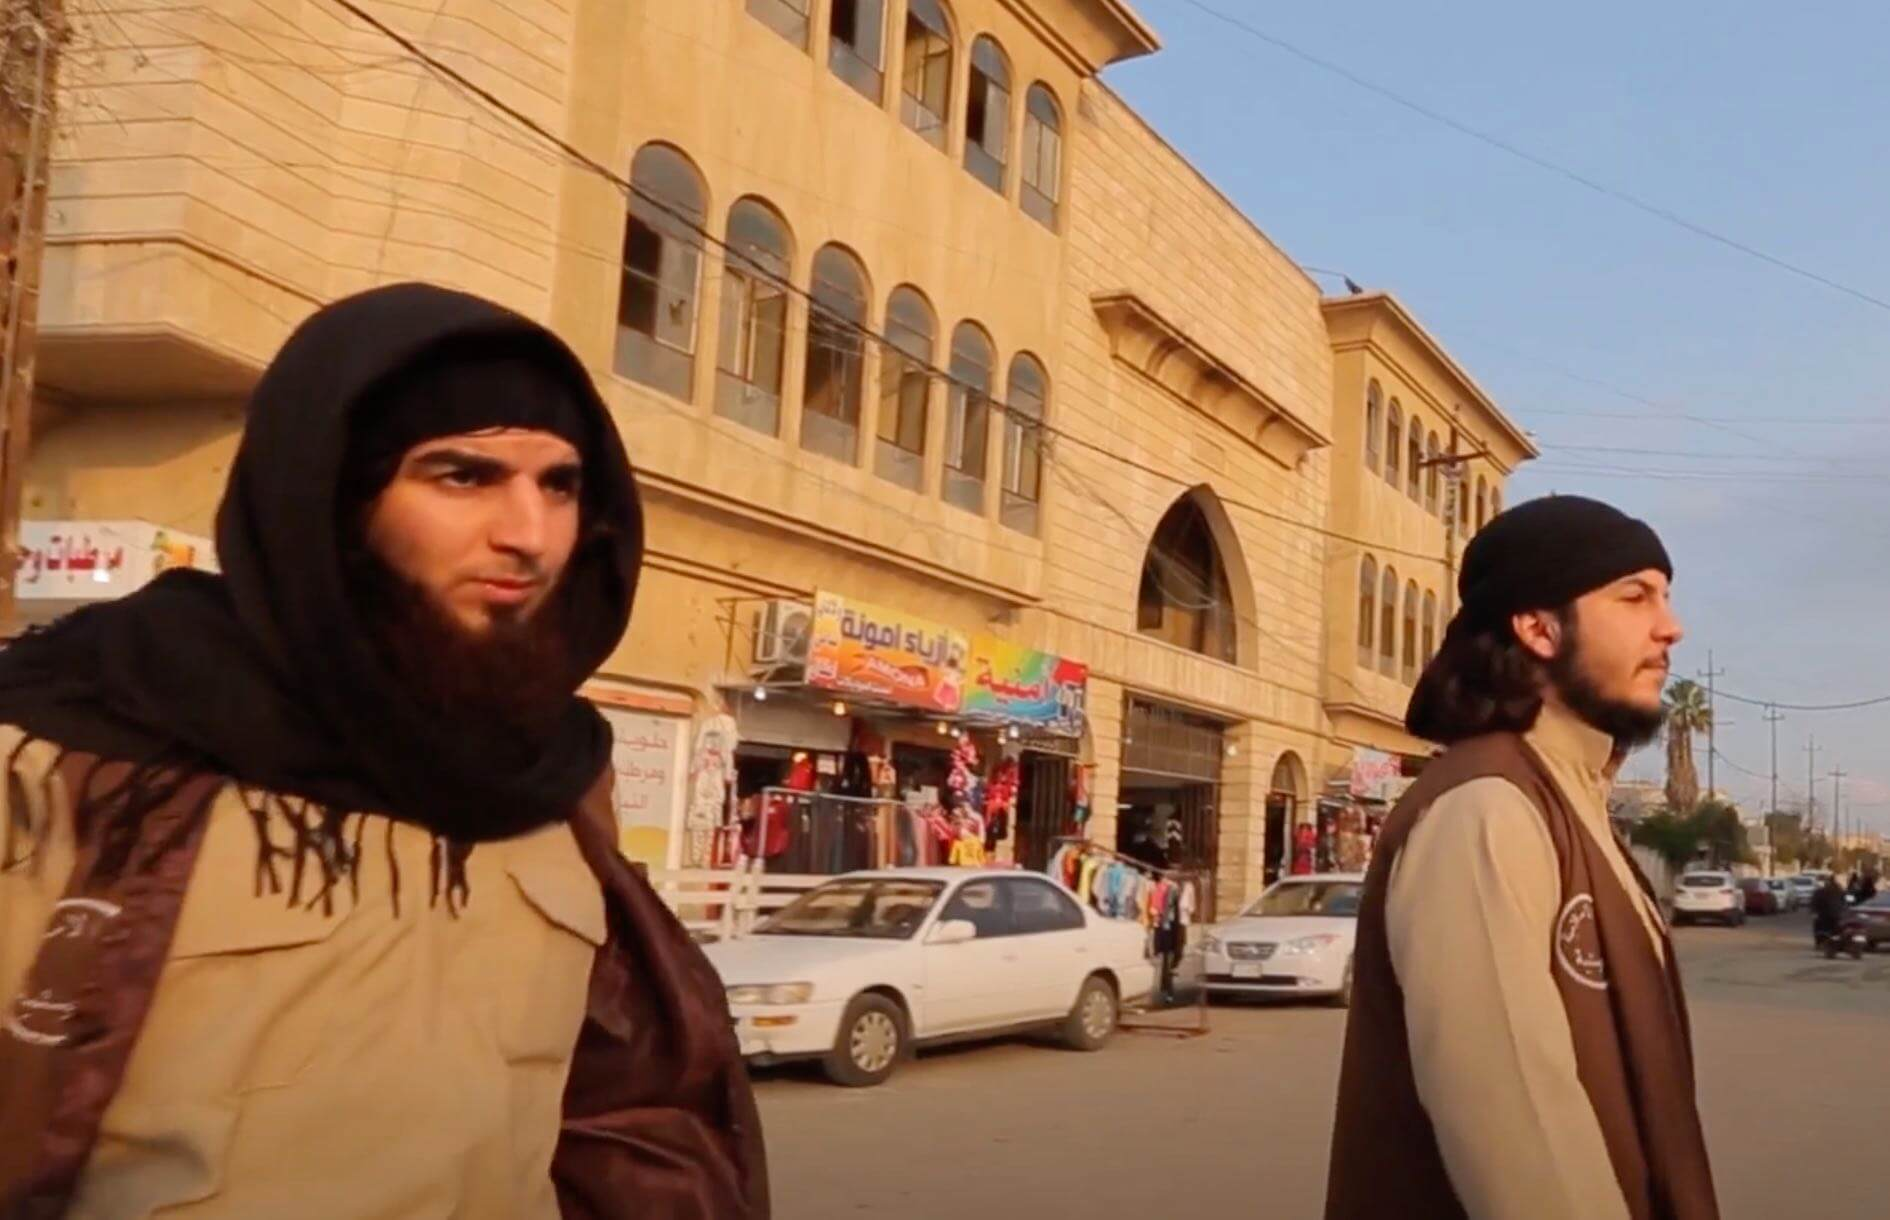 A Scholar In The Islamic State Caliphate